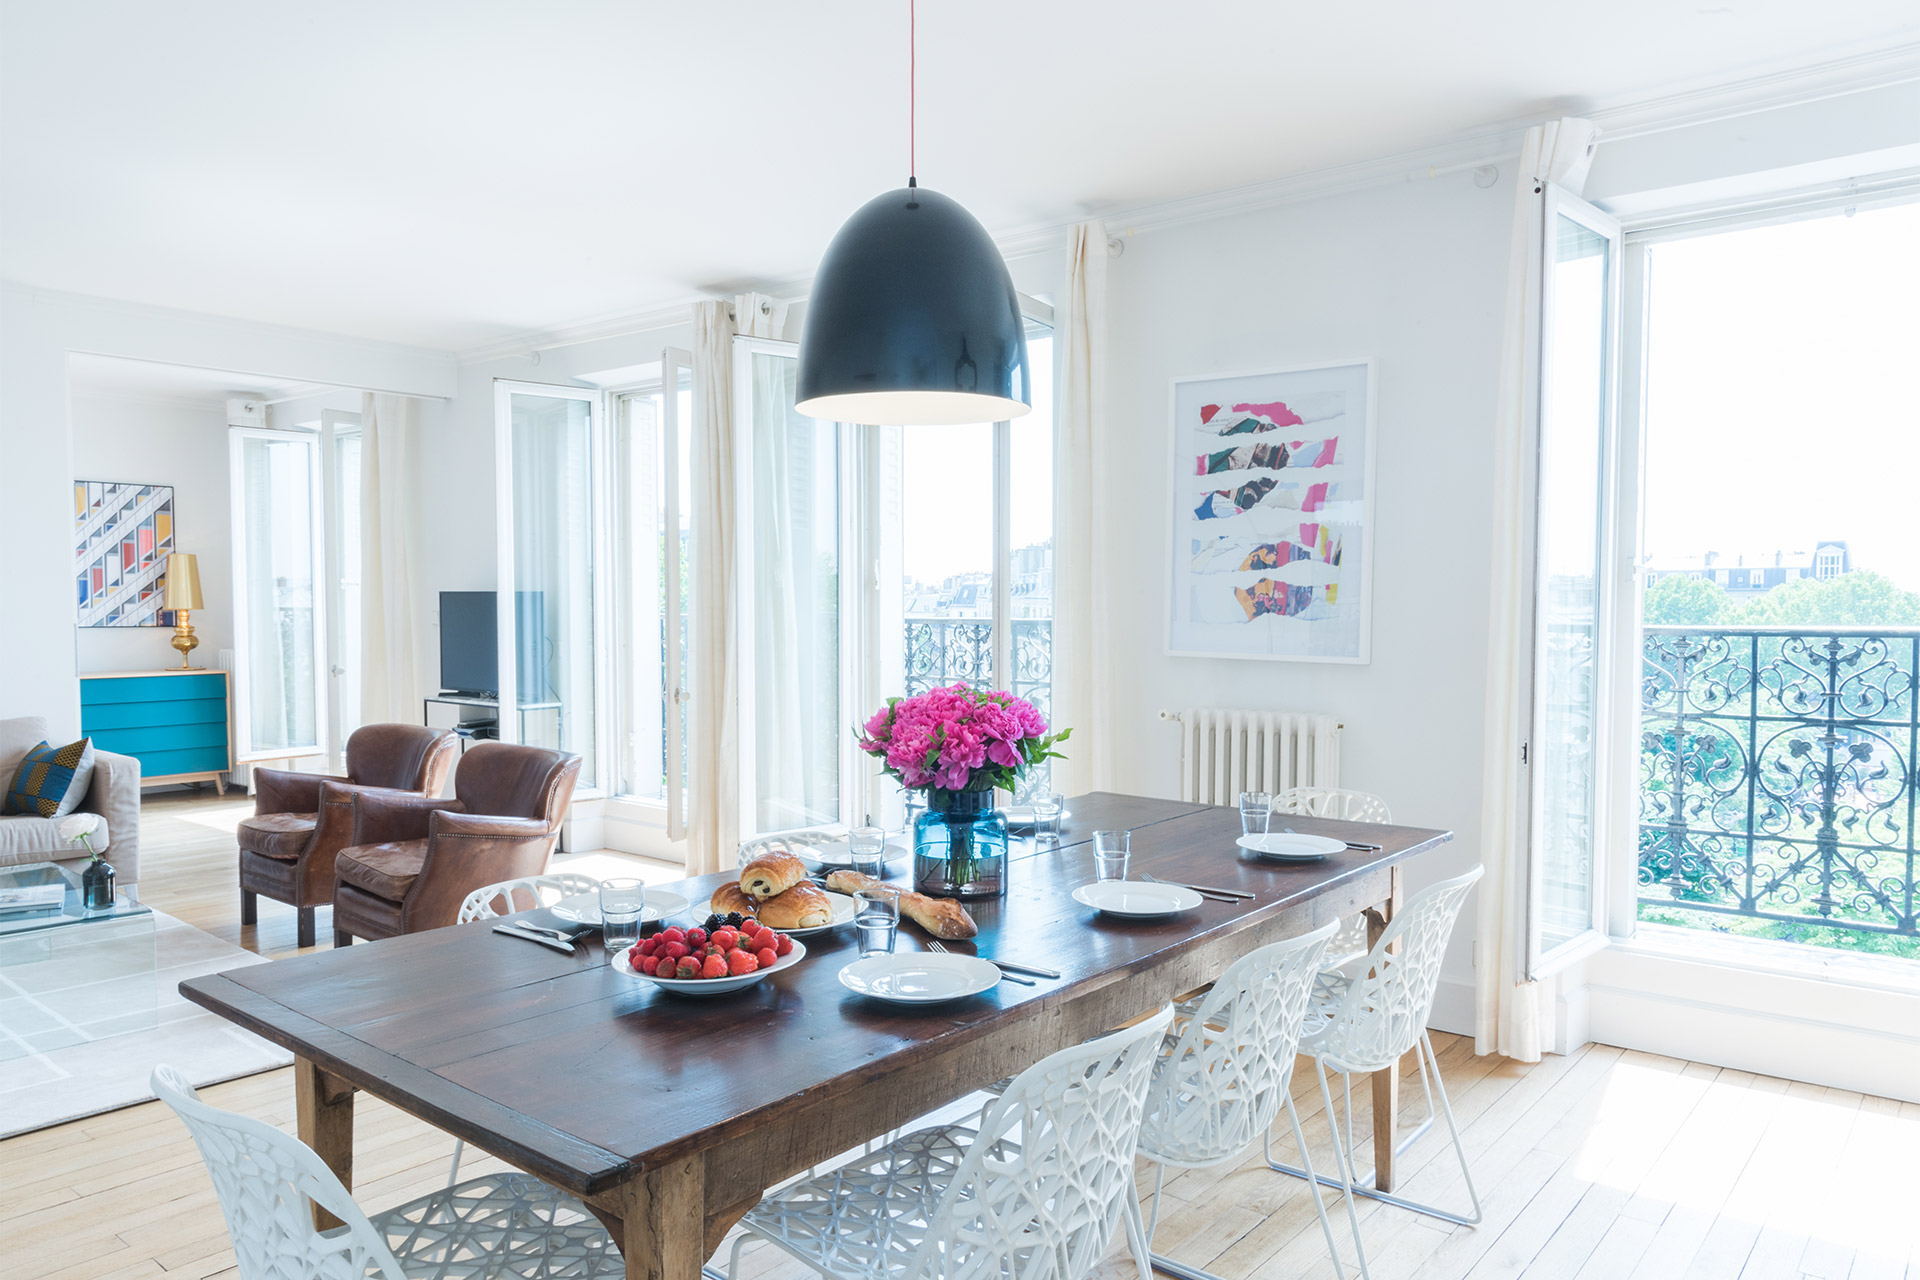 Spacious three bedroom vacation rental in the artistic montmartre area